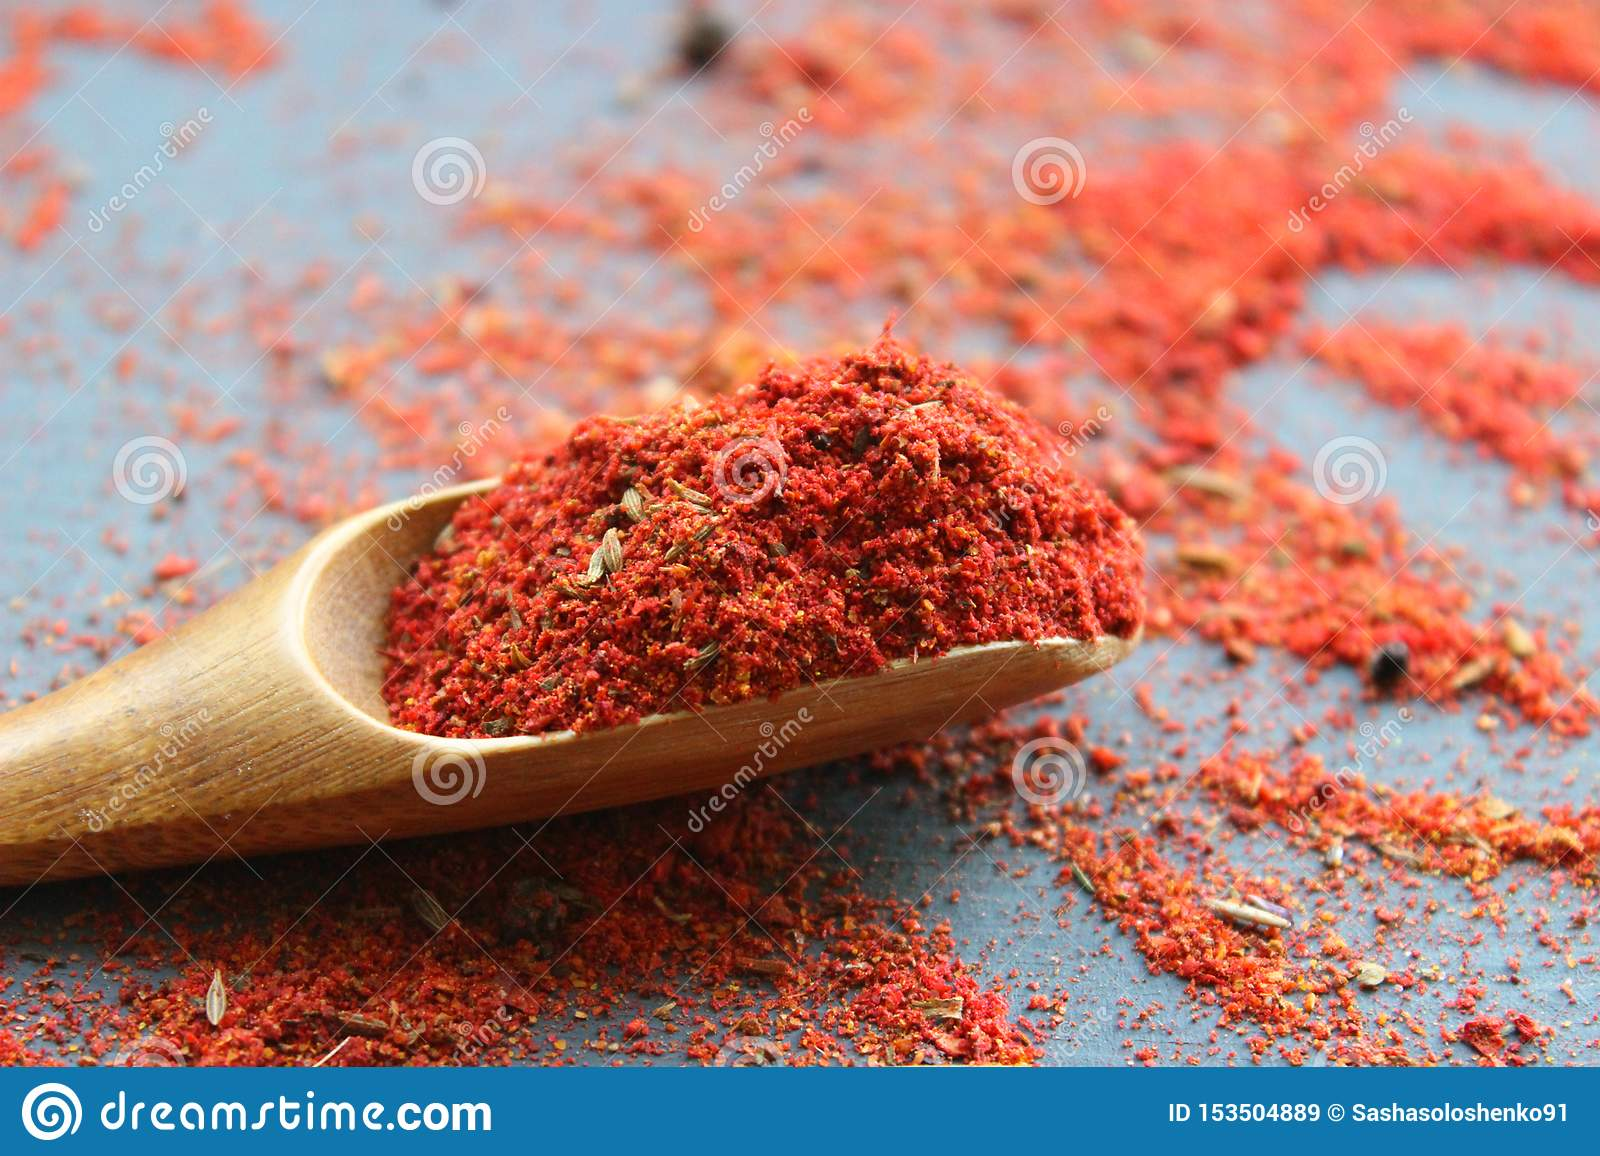 Spices in a wooden spoon. Various Indian spices on black stone table